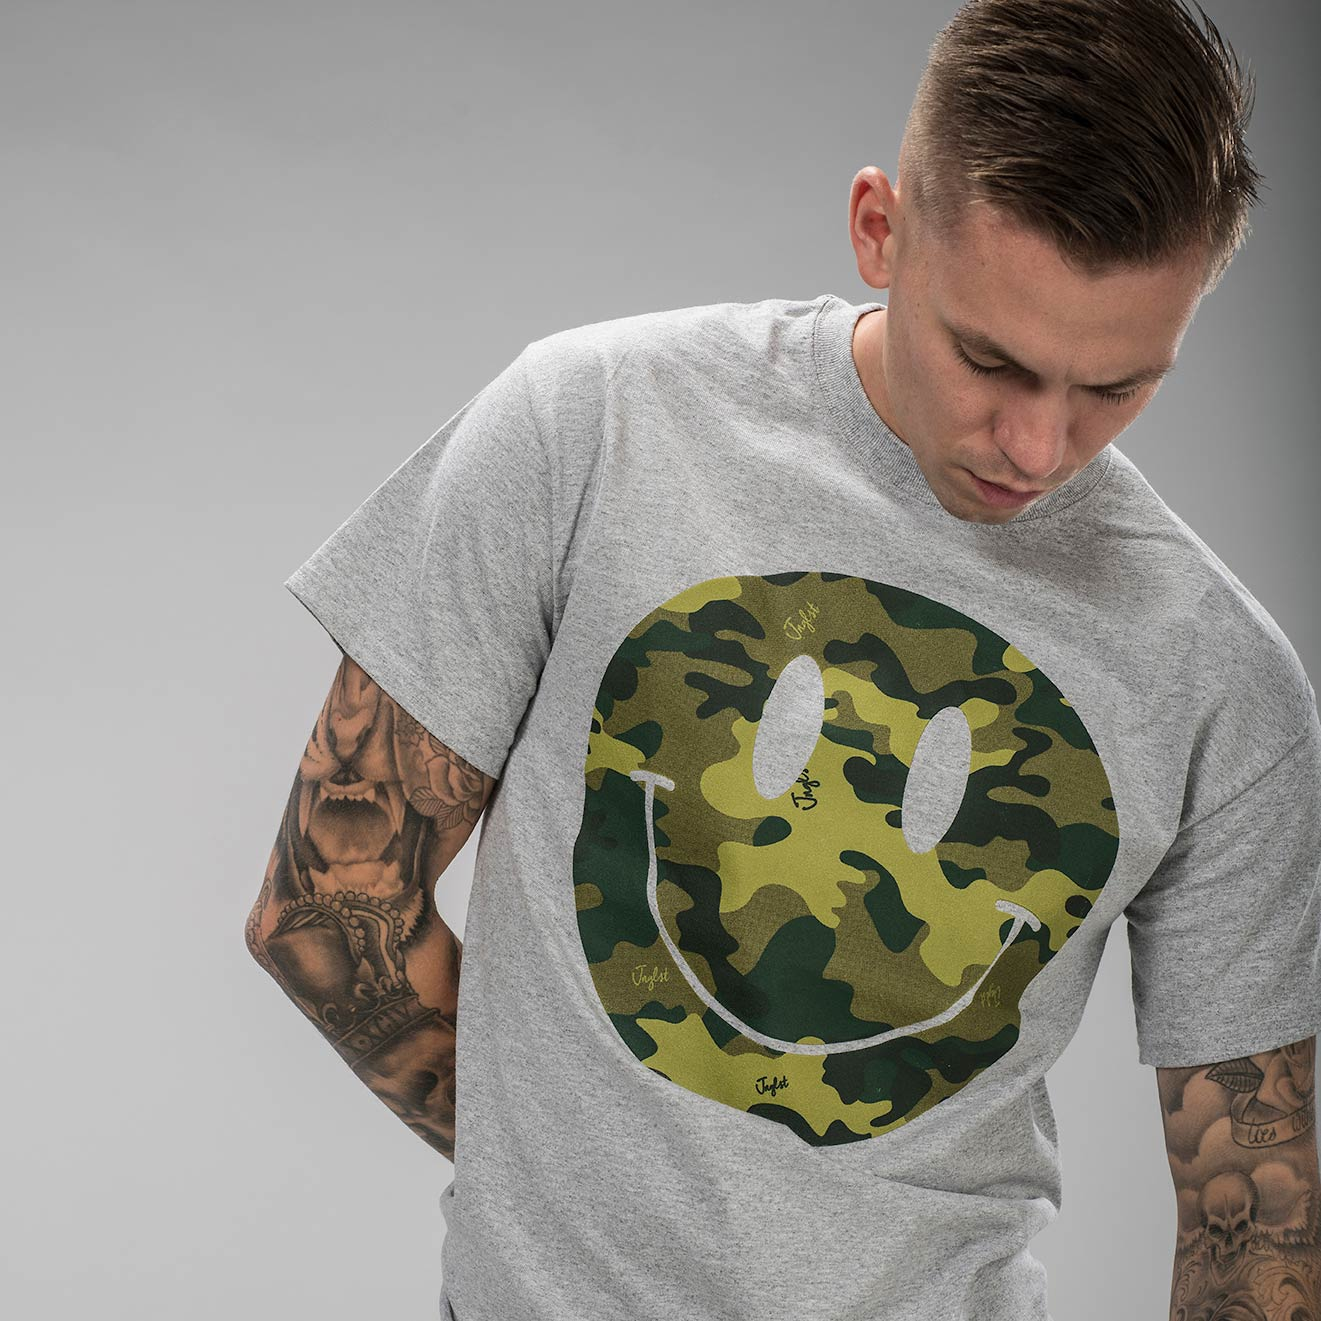 Camo Rave Smiley T Shirt